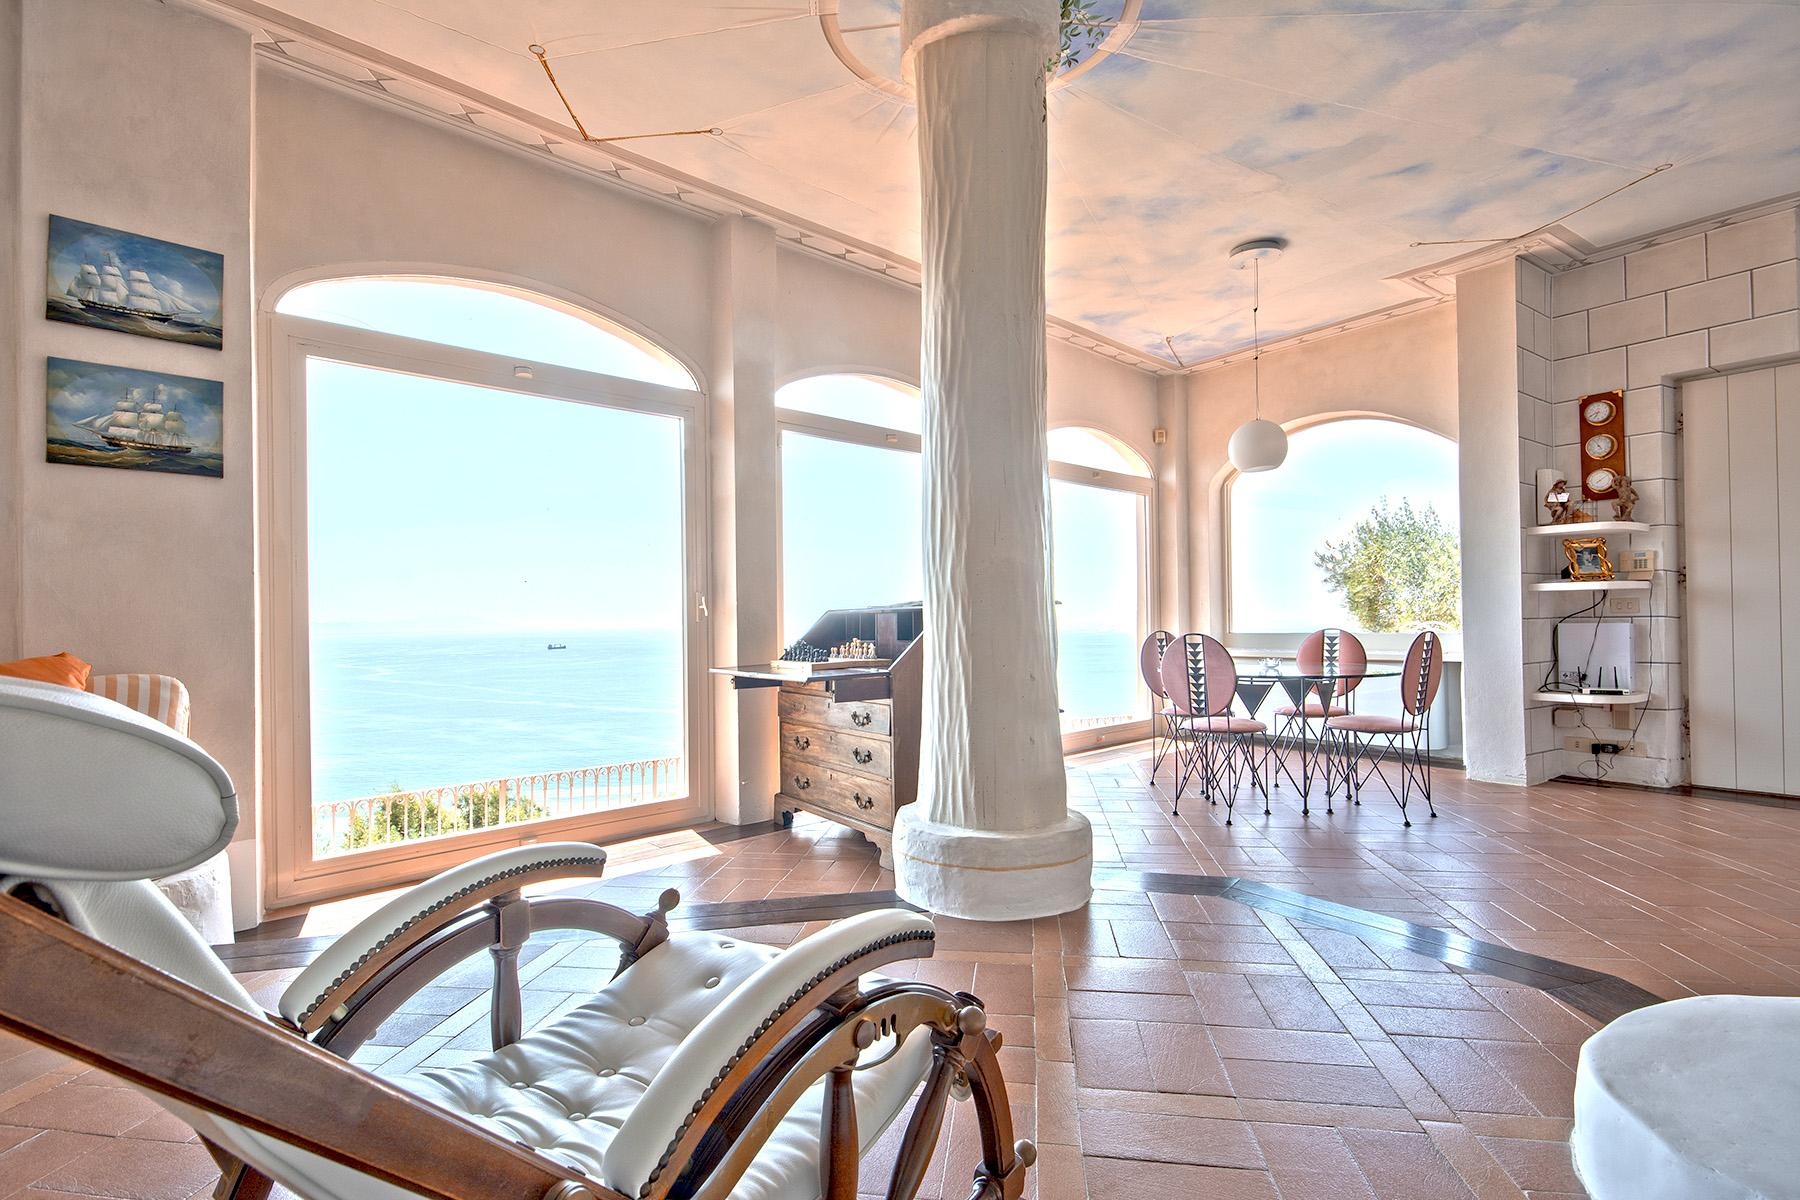 Charming luxury villa with swimming pool overlooking the Ligurian sea - 24